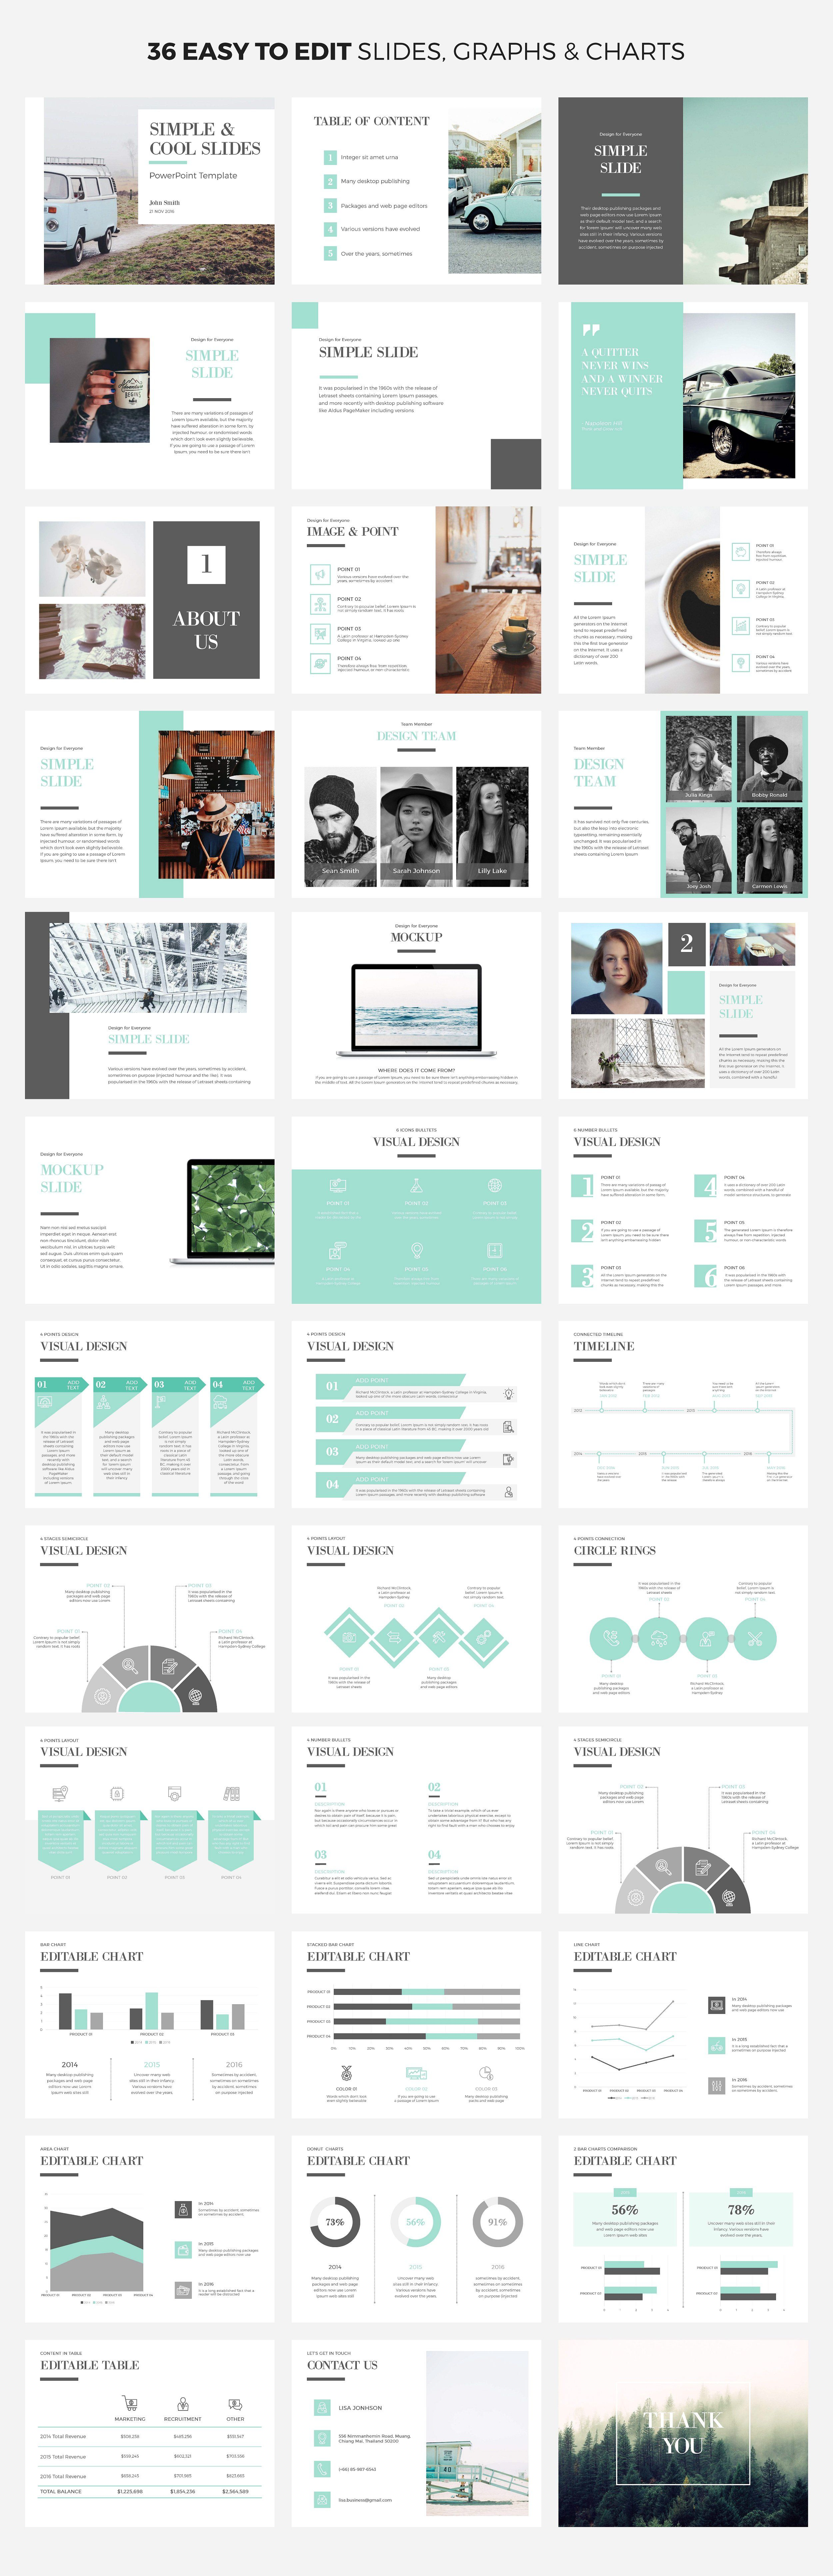 Simple Infographic Powerpoint Template With Customizable Color Theme. Smart  Art Is Easily Editable To Add Your Own Content To The Graphics And Charts.